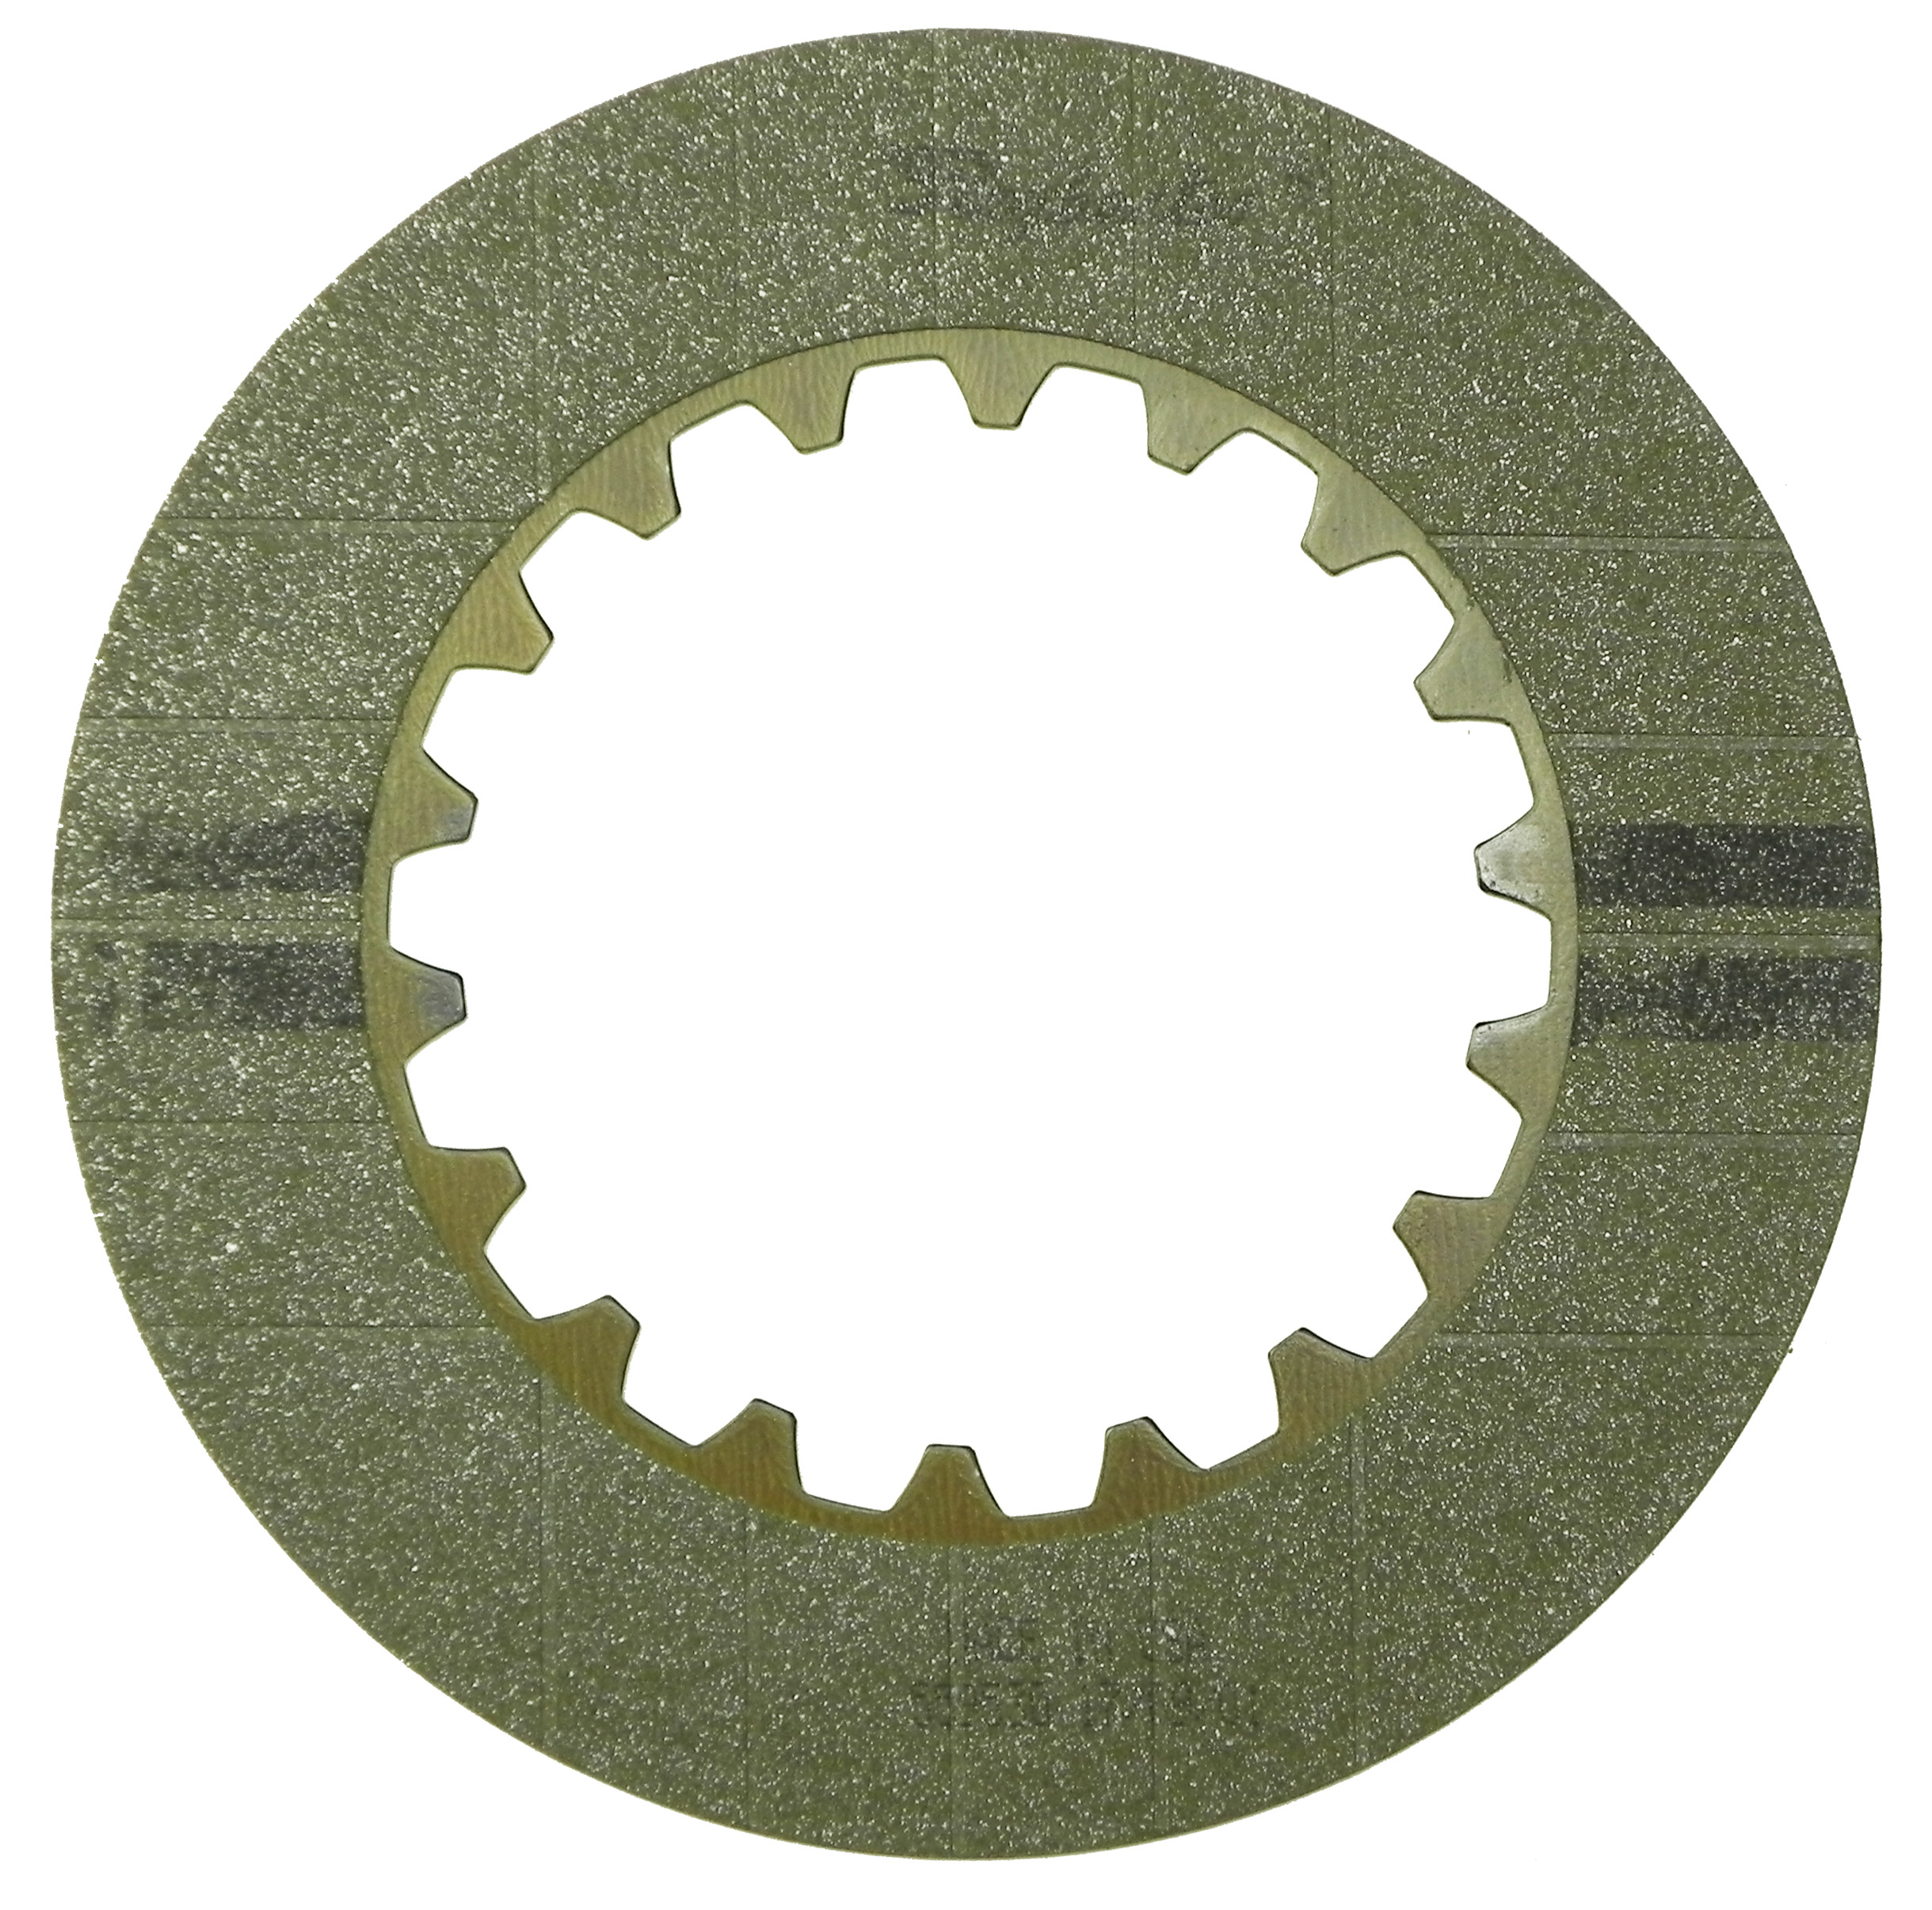 R559530 | 1991-1999 Friction Clutch Plate Graphitic 4th (4T60E) Graphitic, 2 Stripes